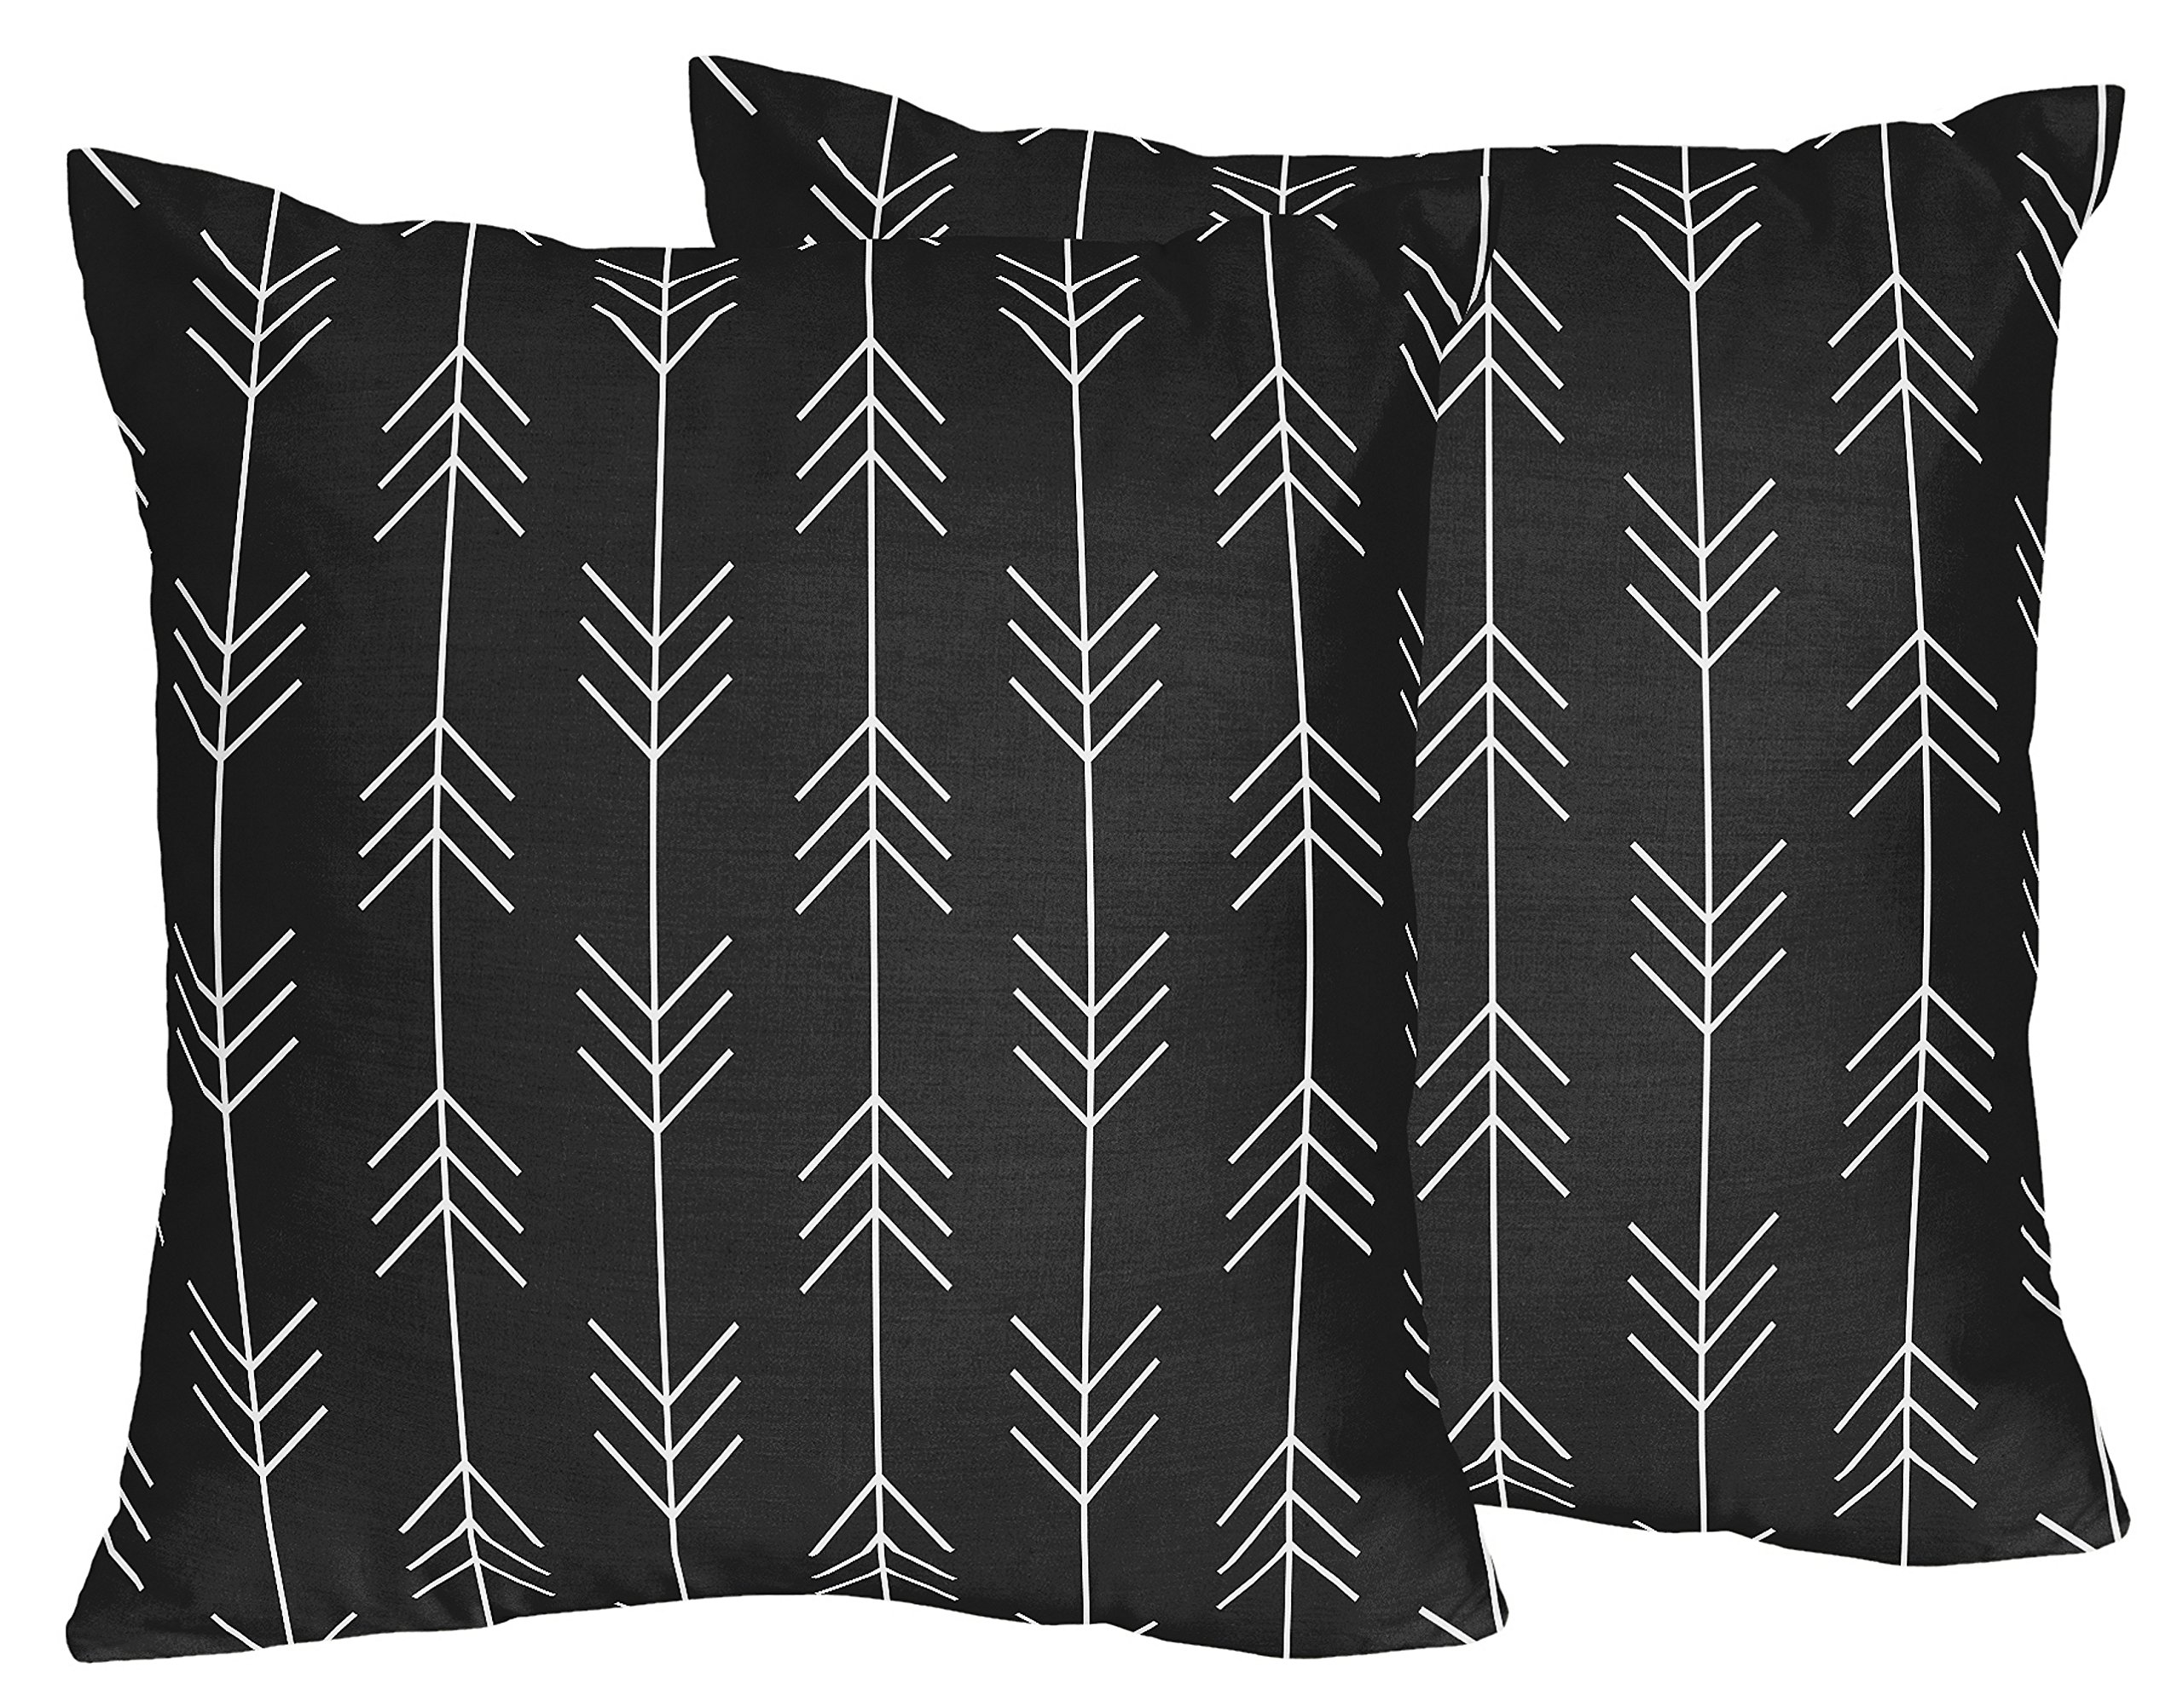 Sweet Jojo Designs Black and White Woodland Arrow Decorative Accent Throw Pillows for Rustic Patch Collection - Set of 2 by Sweet Jojo Designs